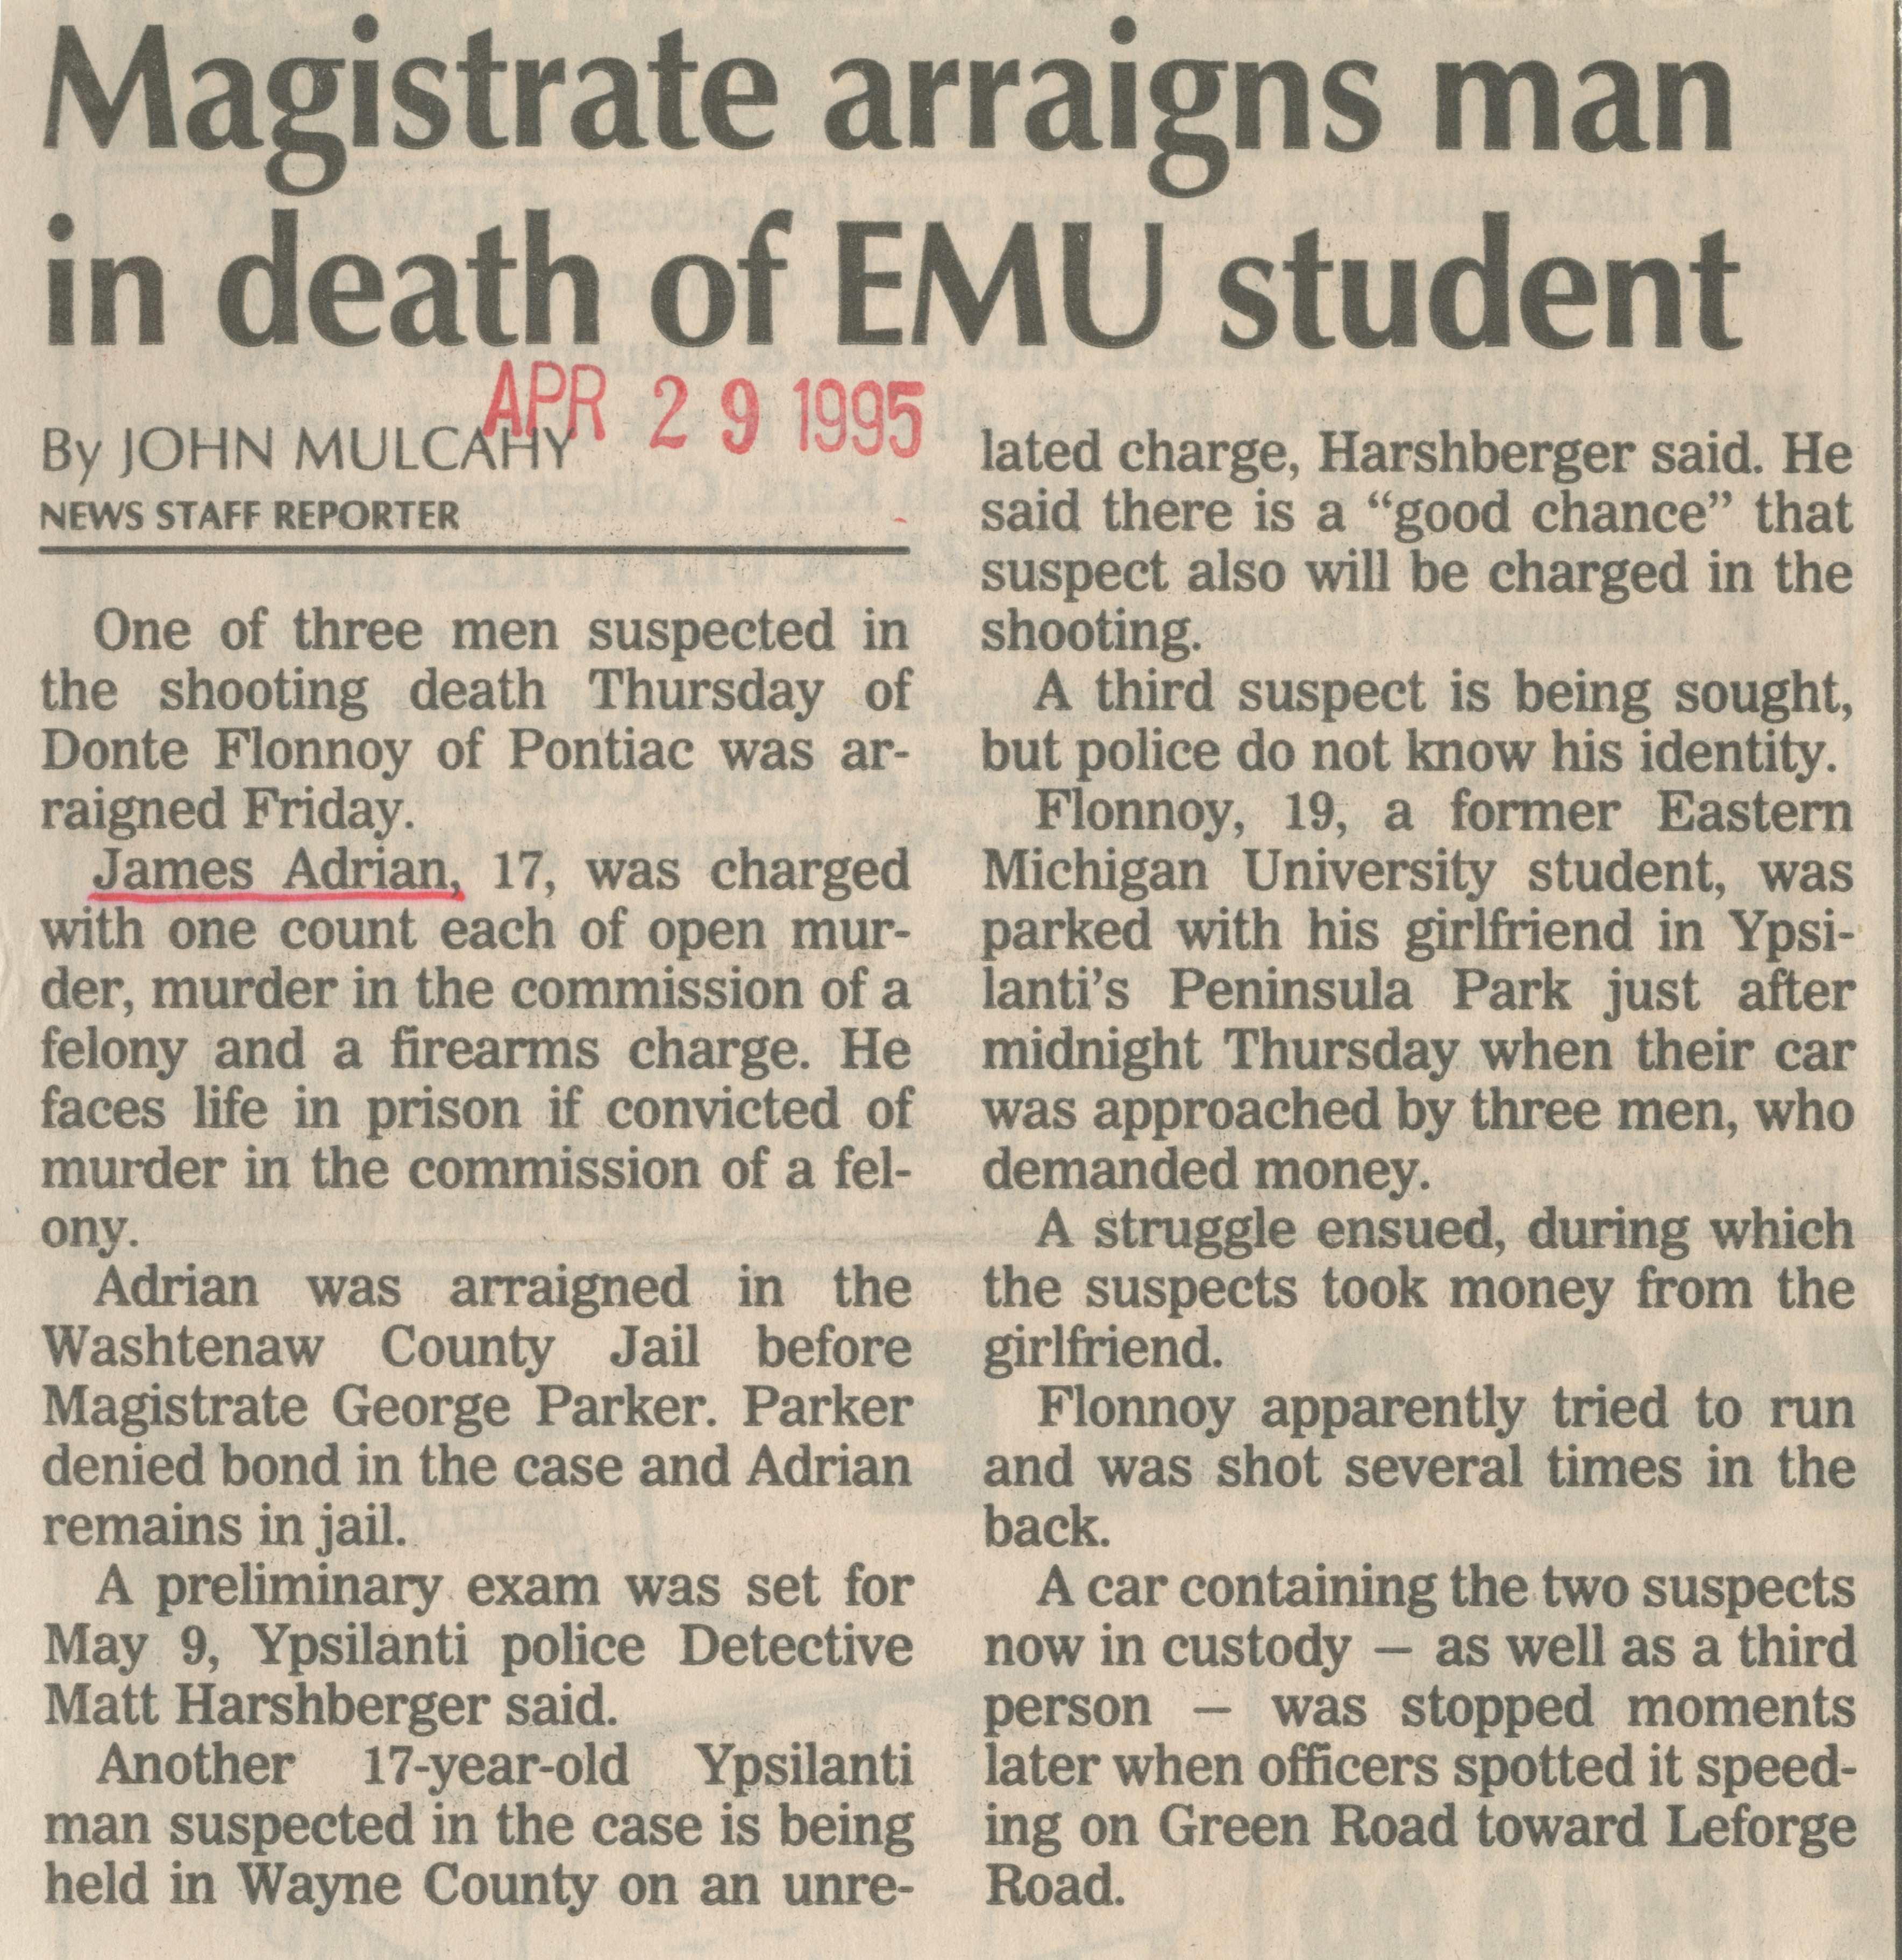 Magistrate arraigns man in death of EMU student image